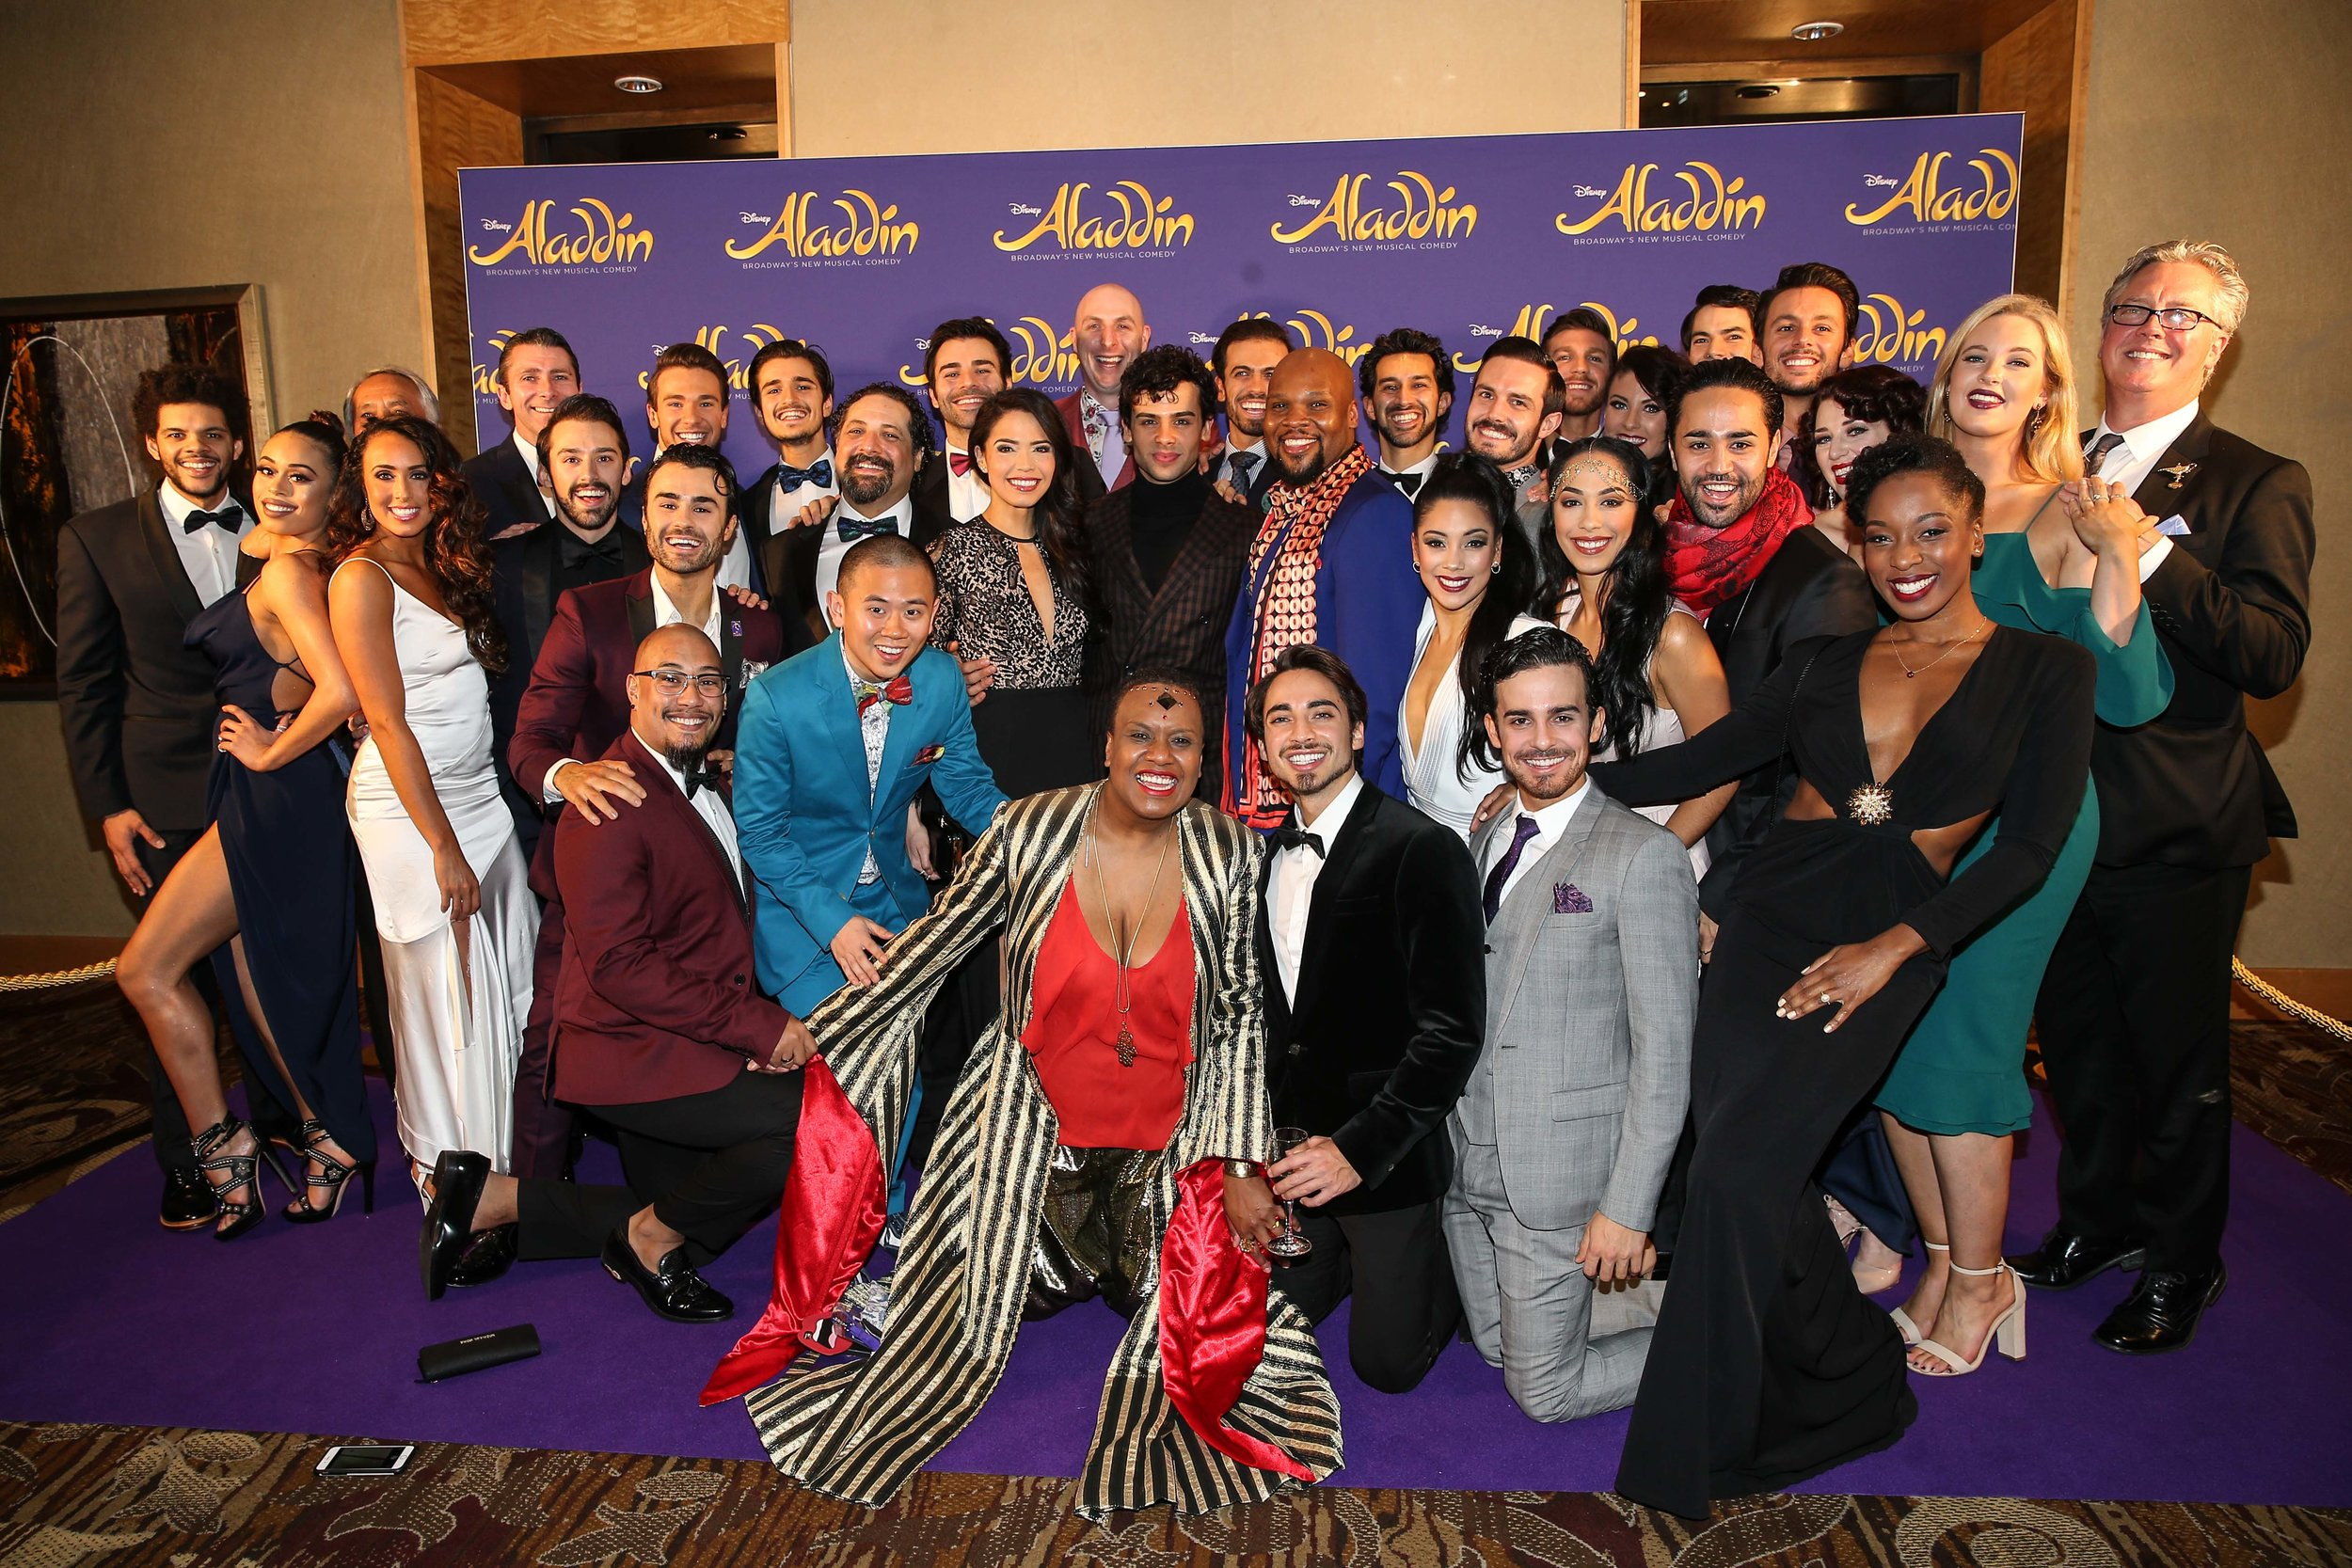 Aladdin The Musical - Opening Night